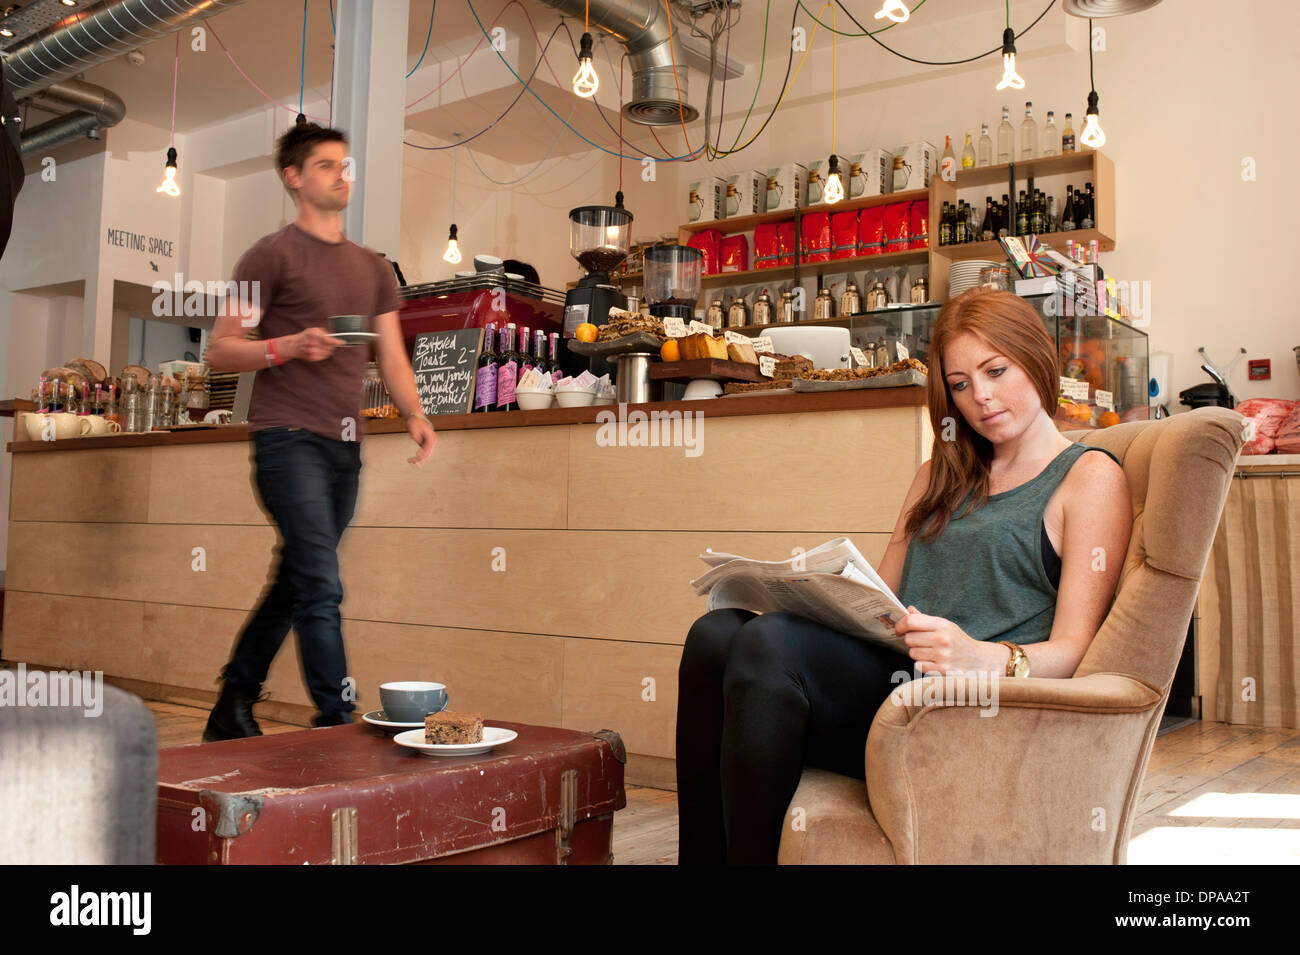 Young woman having tea and reading newspaper in cafe - Stock Image